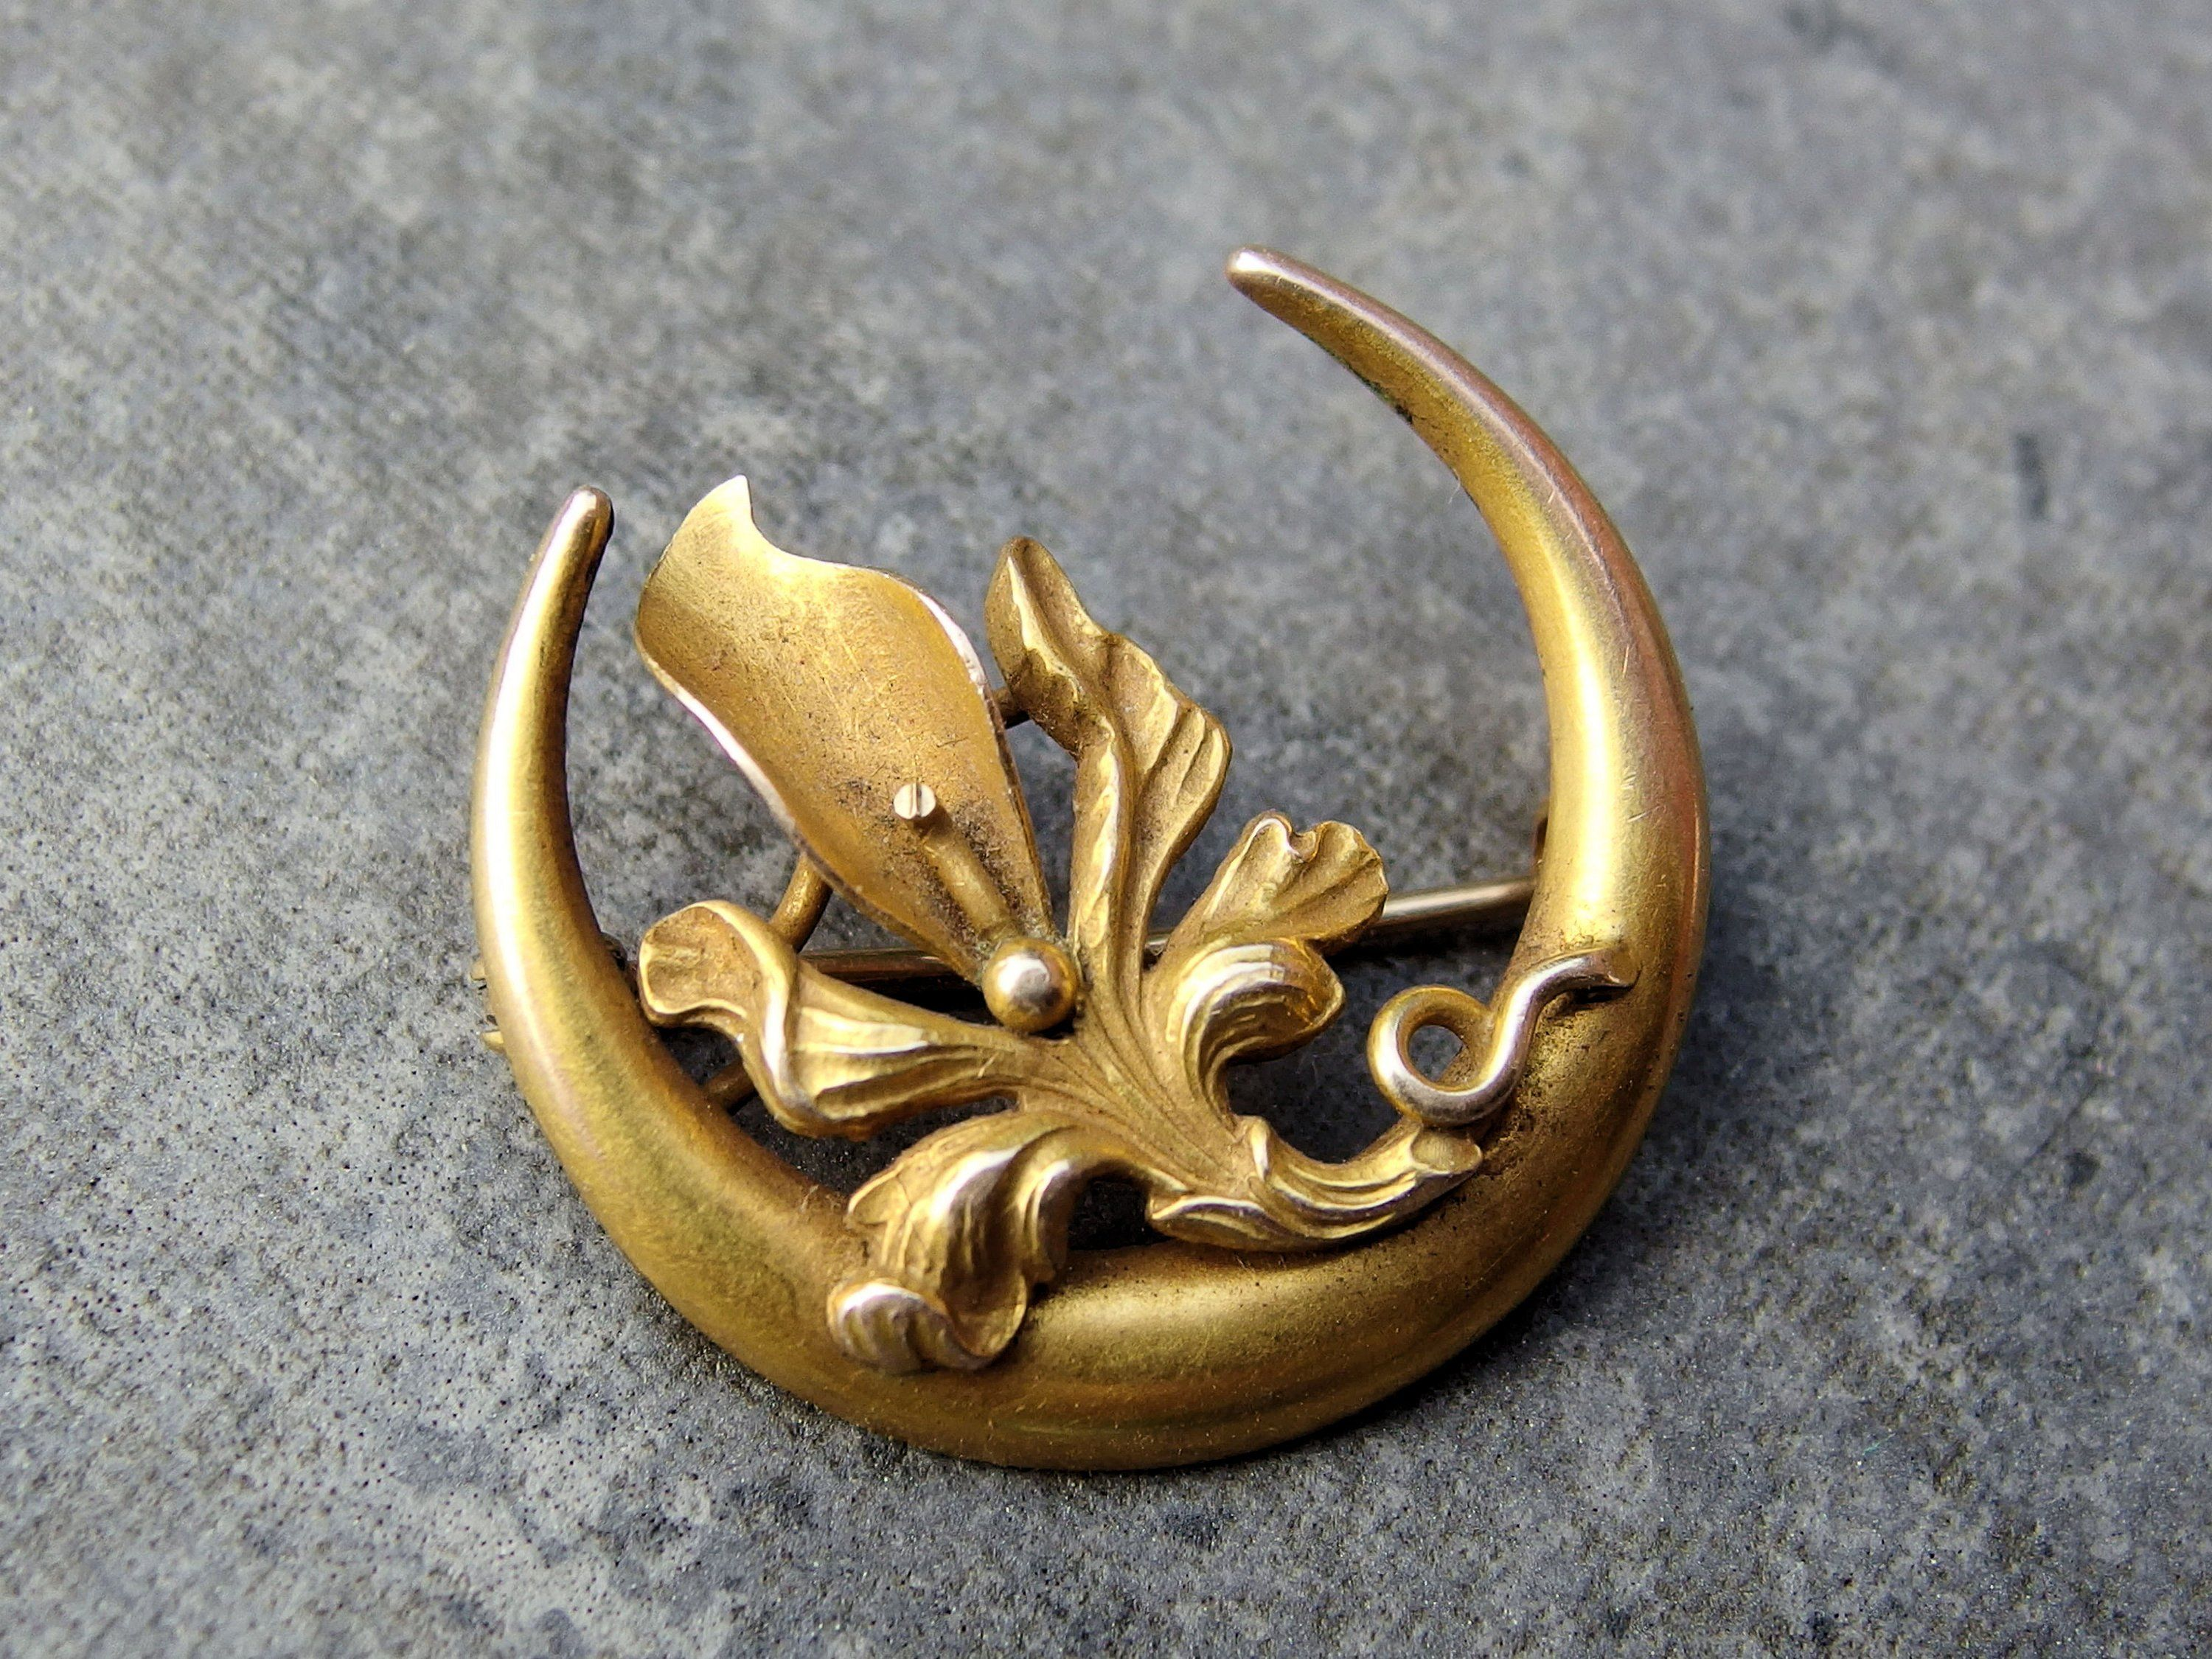 10k Gold Crescent Moon, Flower Honeymoon Pin or Brooch, Victorian to Edwardian Period, Traditional Groom to Bride Gift, Signed, Orchid, Moon #edwardianperiod